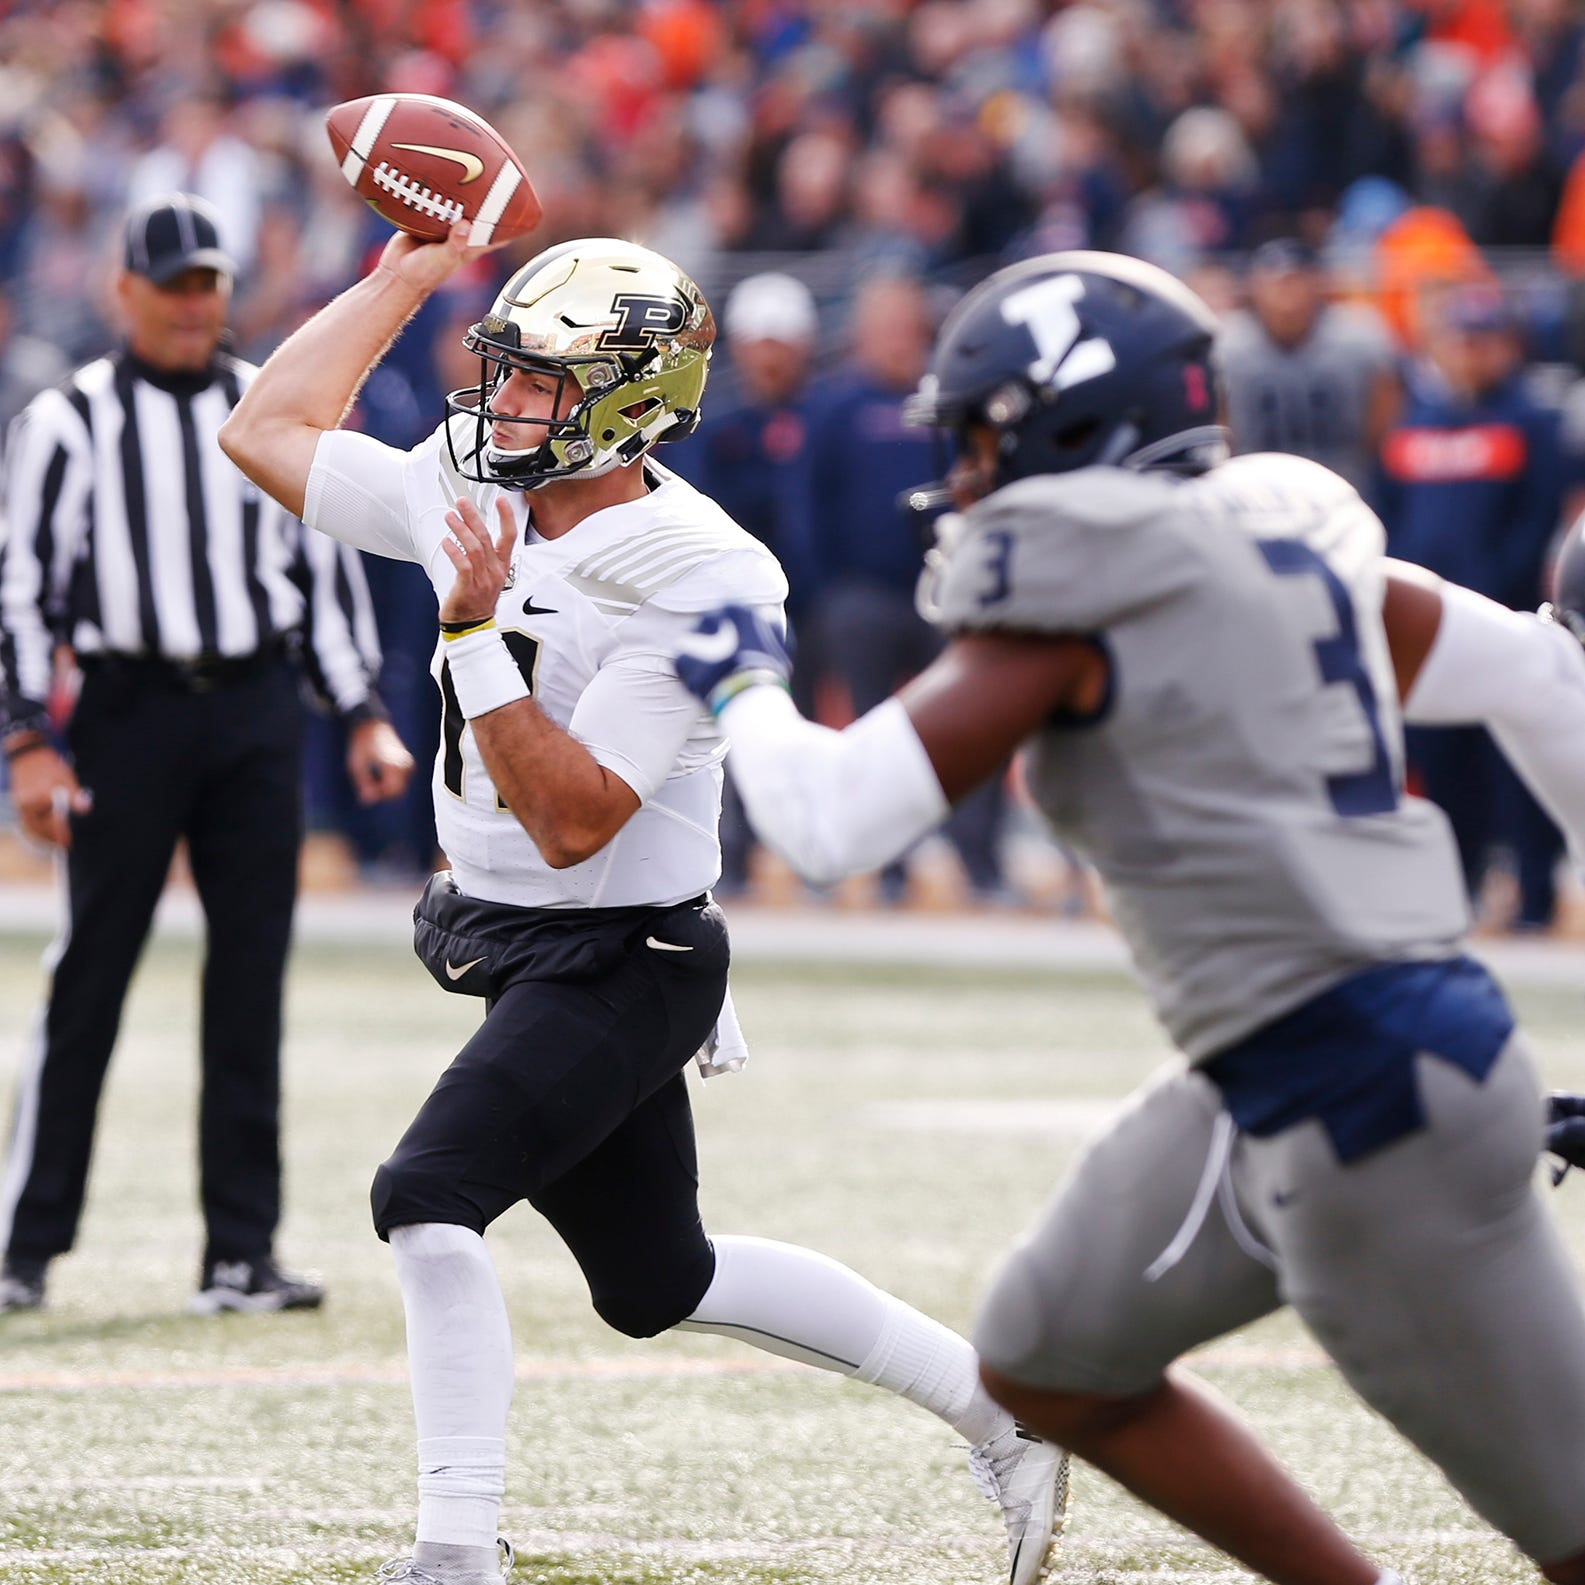 David Blough tops Purdue football offense midseason awards